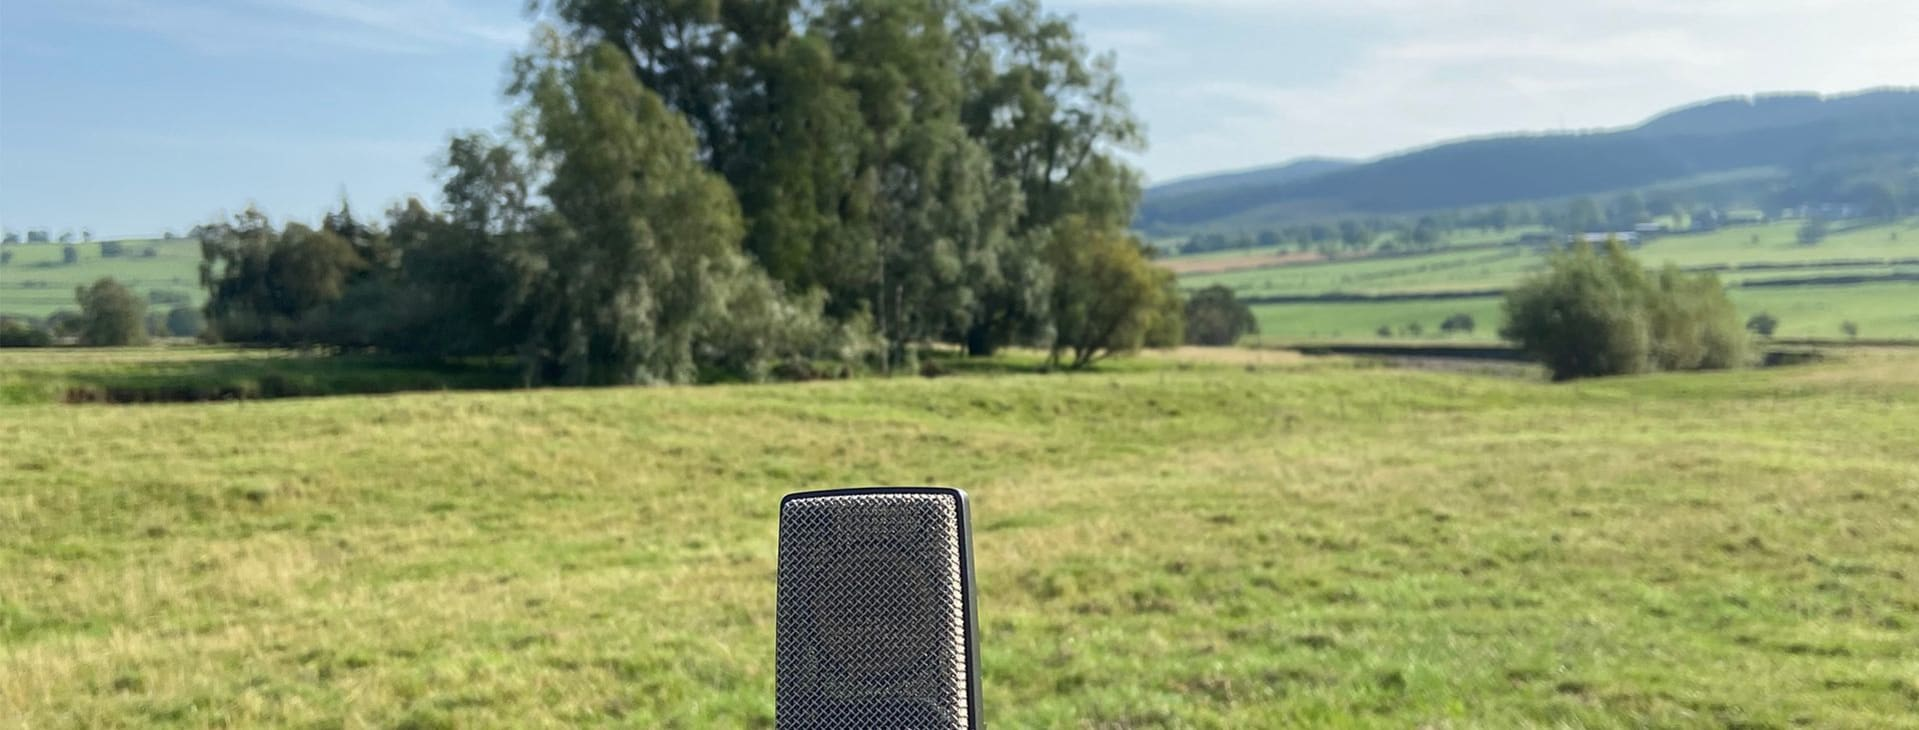 Lost Found and Told: New Audio Tales for Northumberland